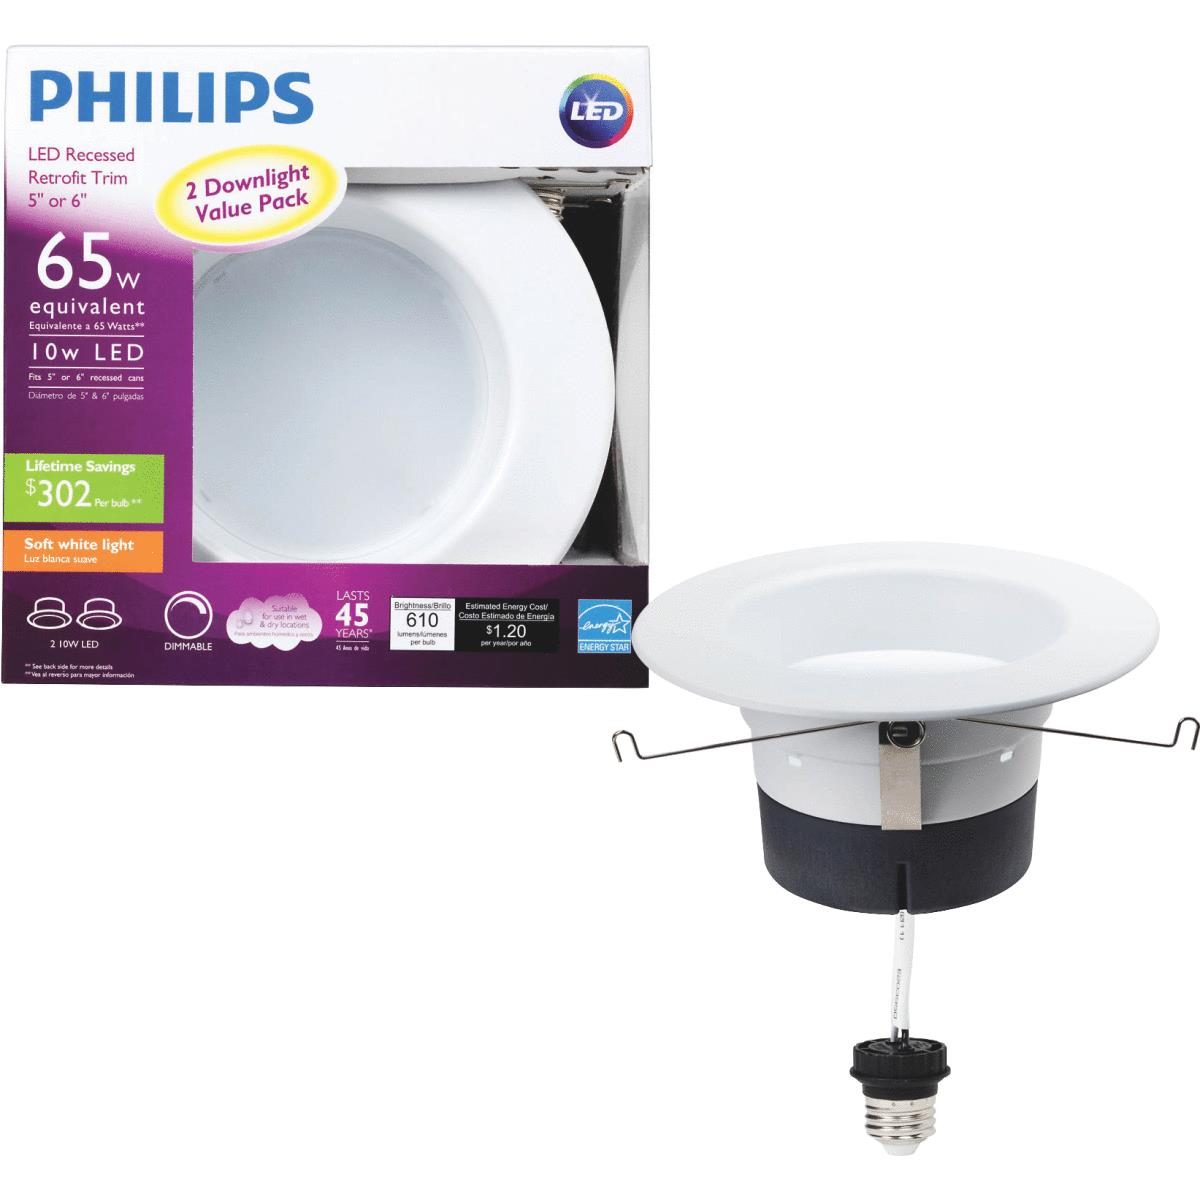 Buy Philips Retrofit 10w Led Recessed Light Kit